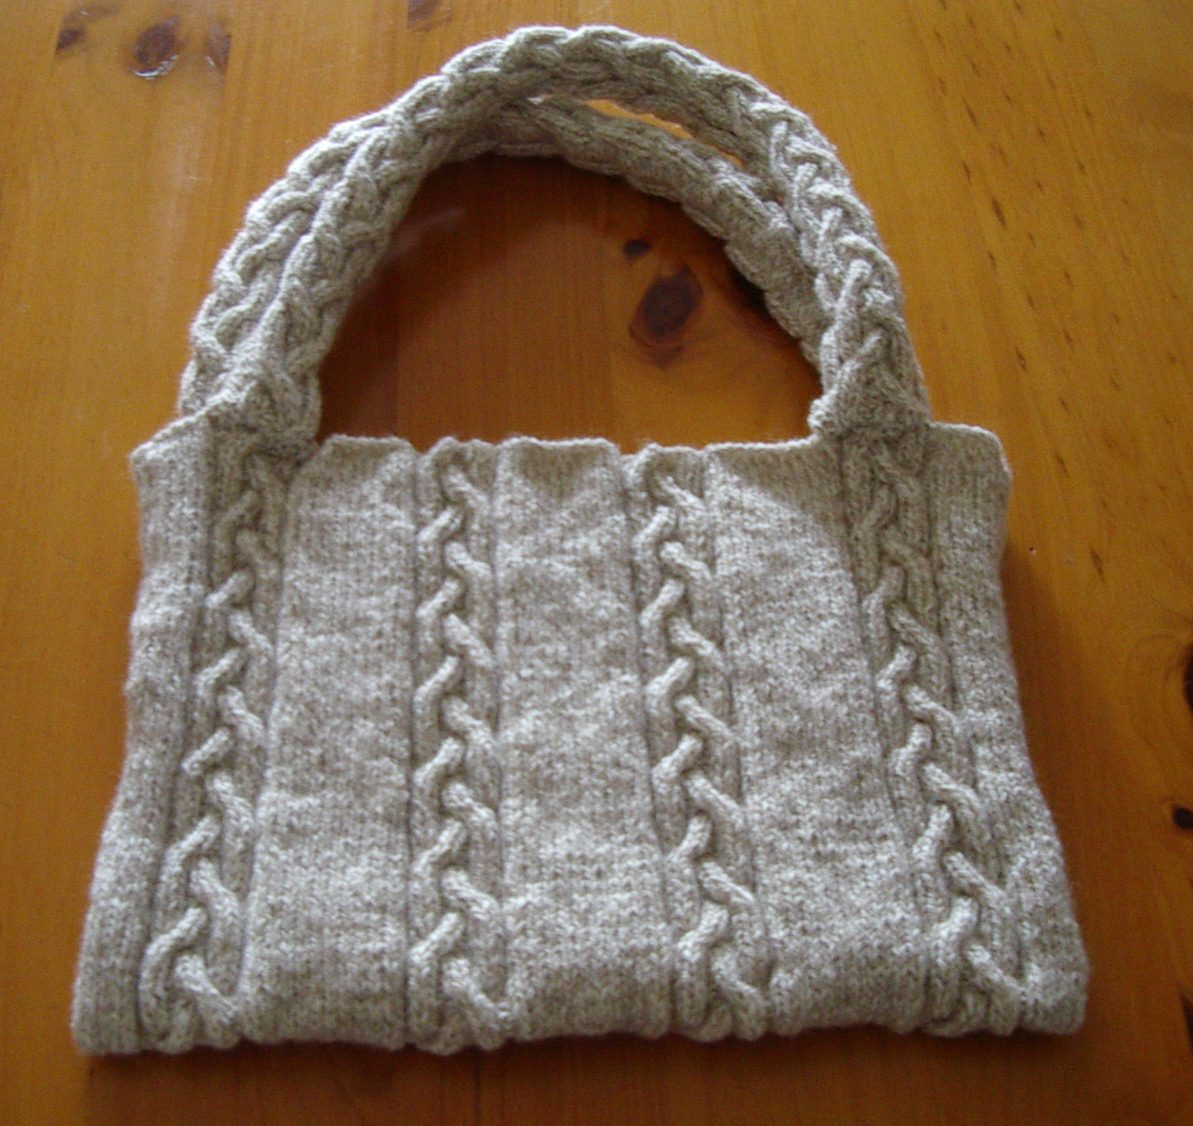 Knitting Patterns Online - Knitting Patterns For Bags ...